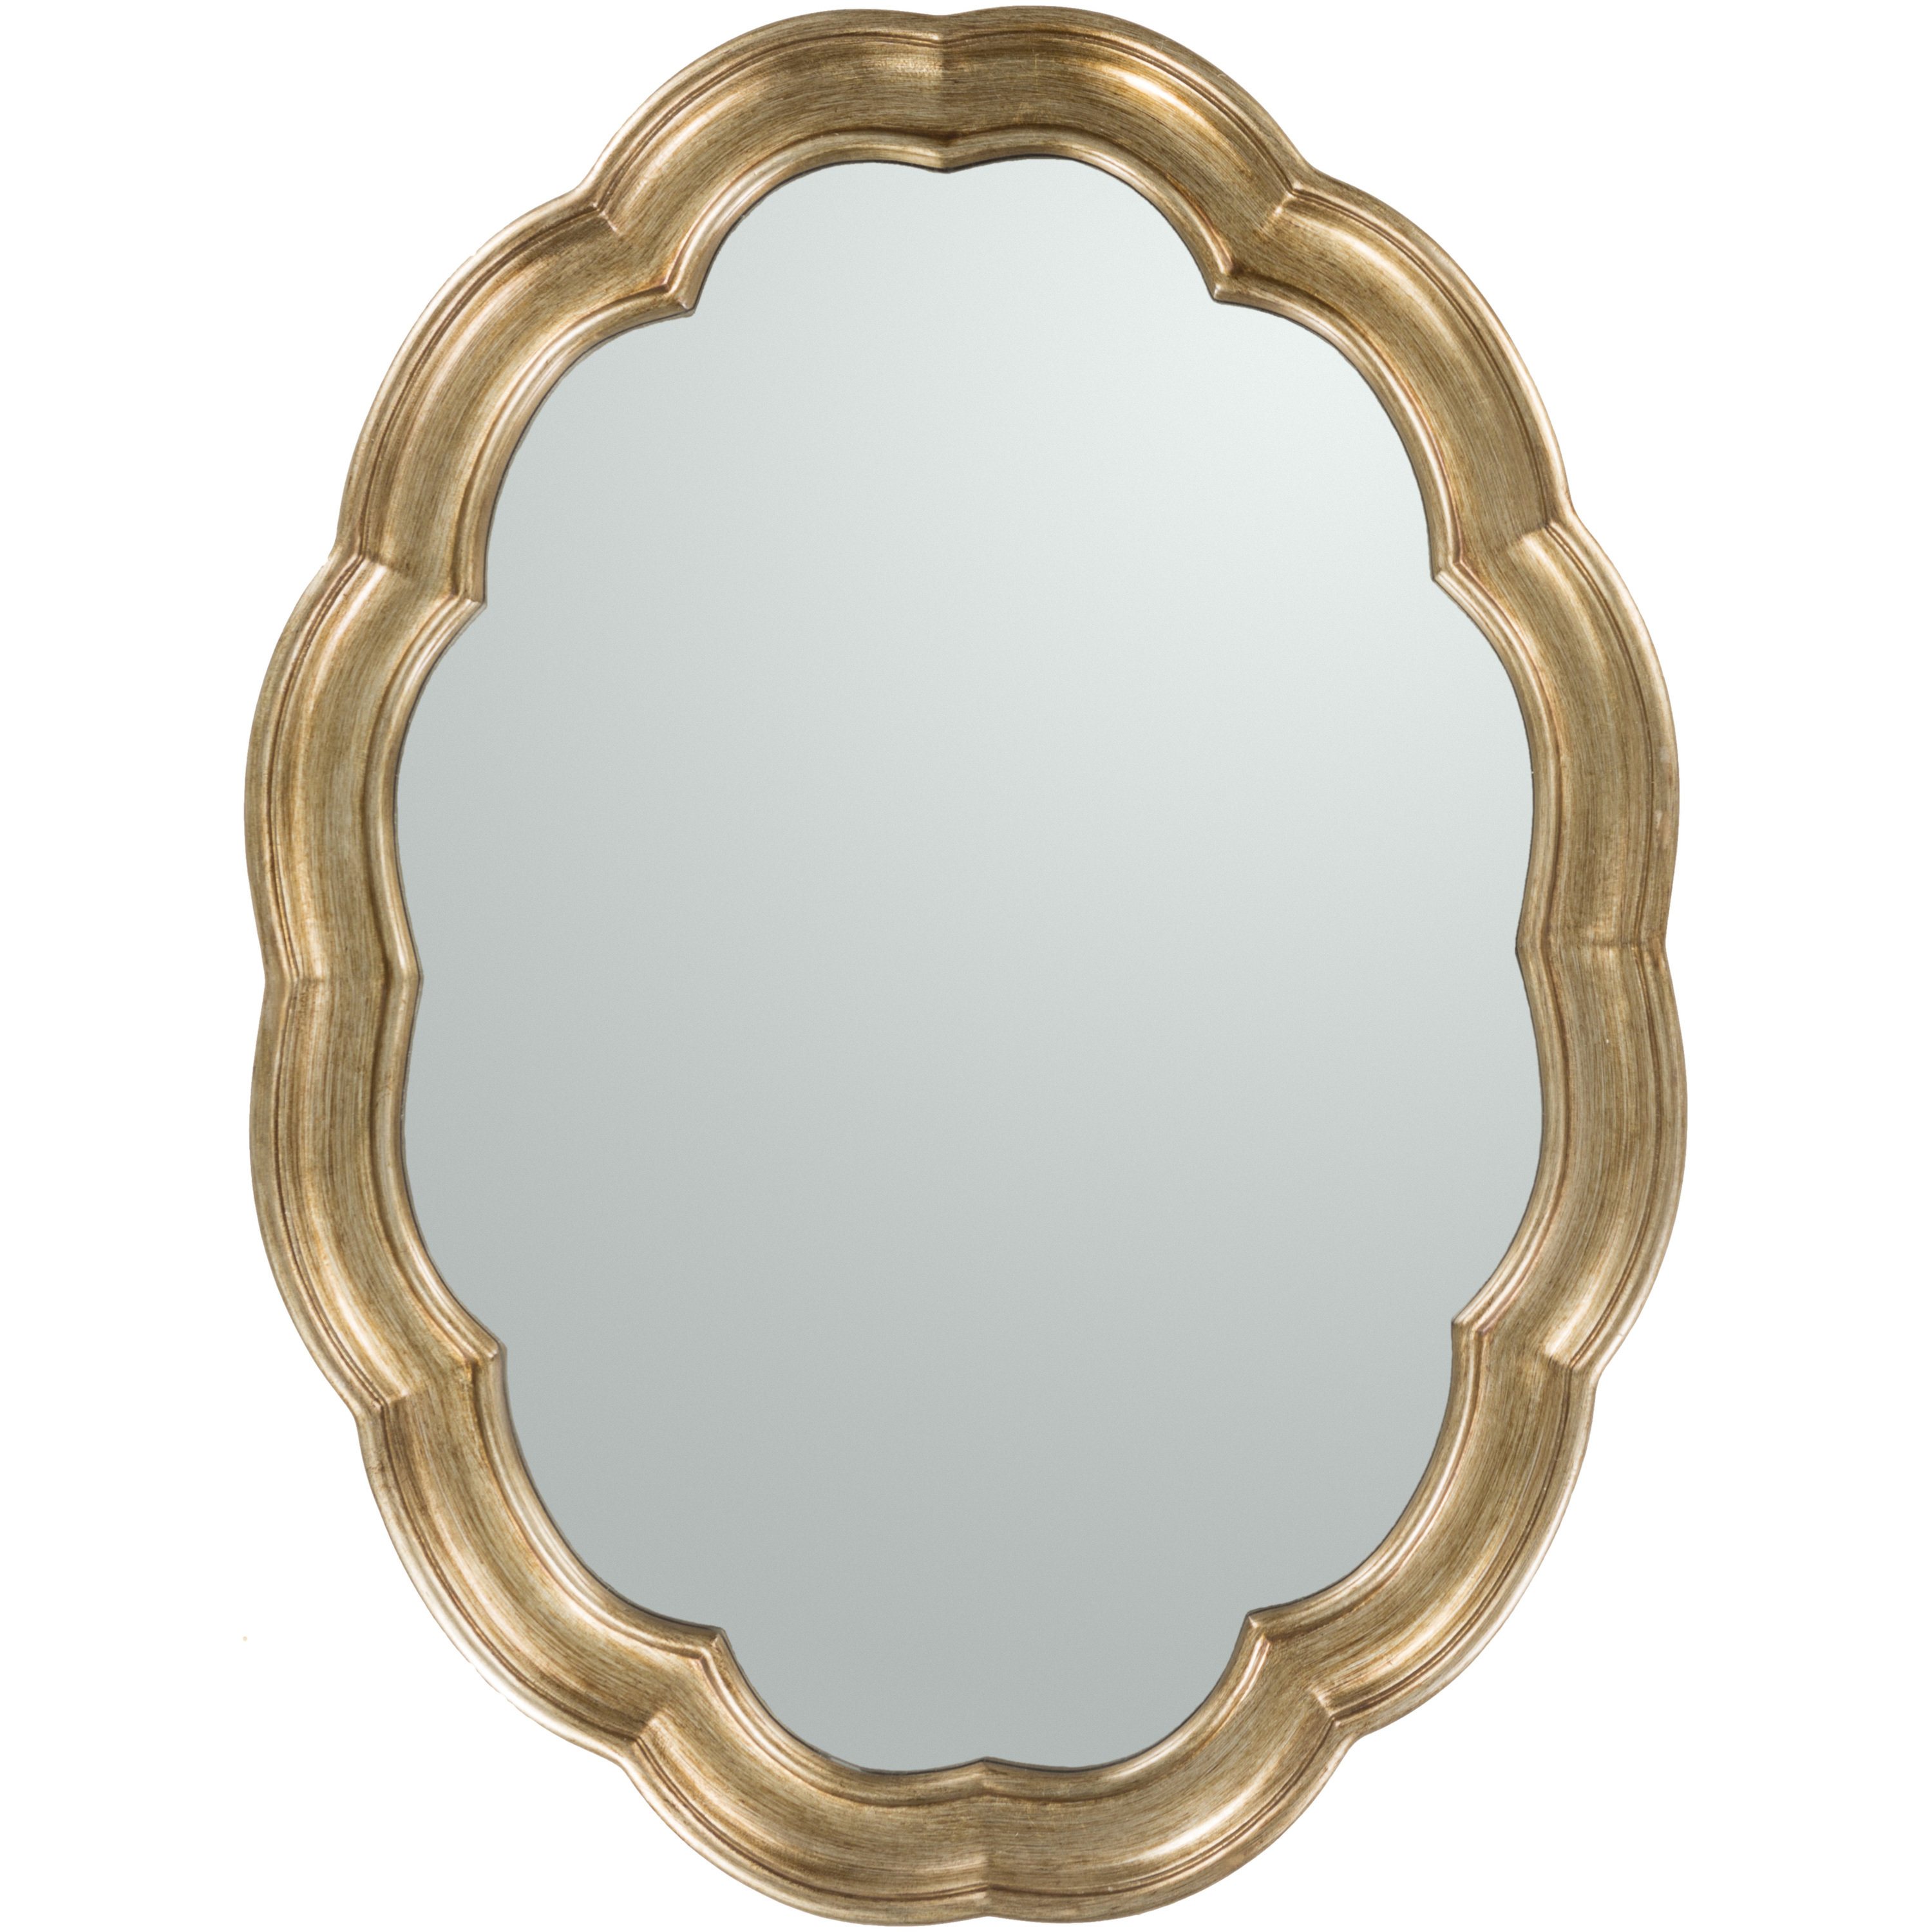 Latest Oval Metallic Accent Mirrors In Glam Oval Accent Wall Mirror (View 10 of 20)